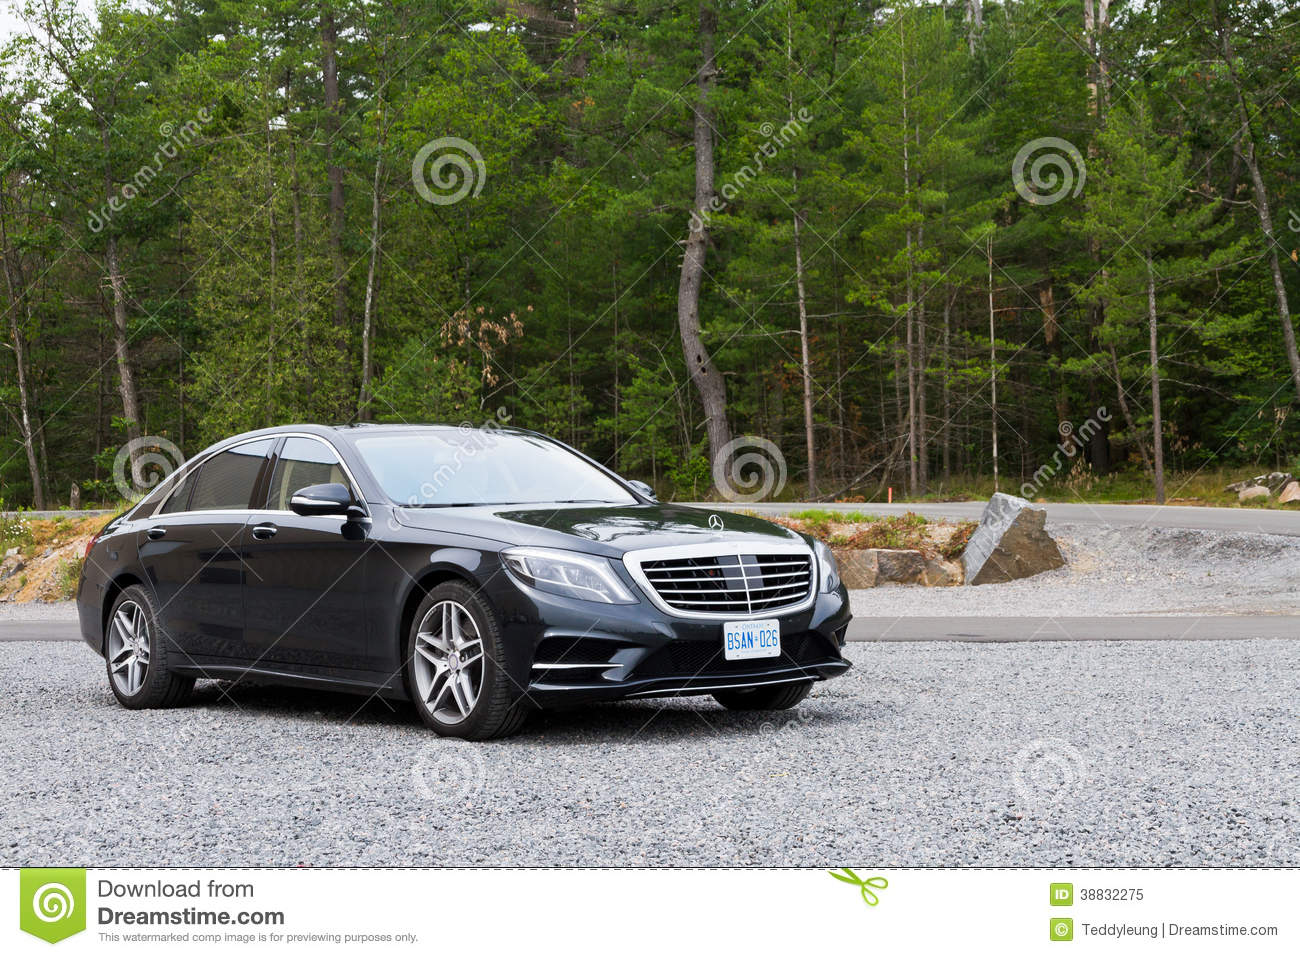 mercedes benz s class 2013 the top model sedan editorial